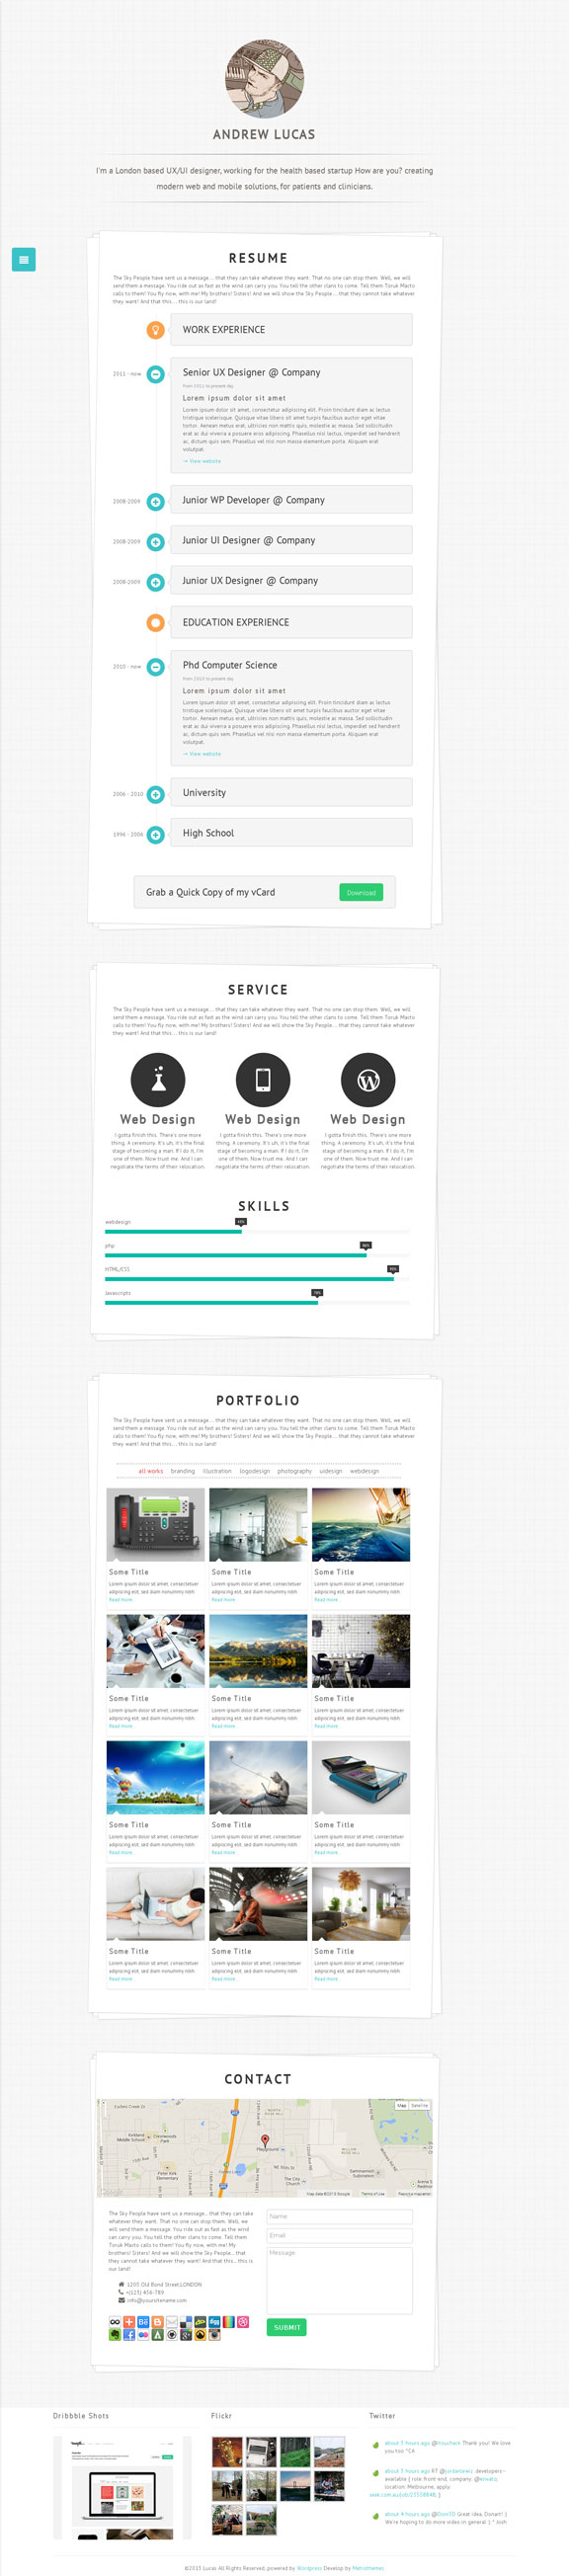 Lucas WordPress Resume Portfolio Theme